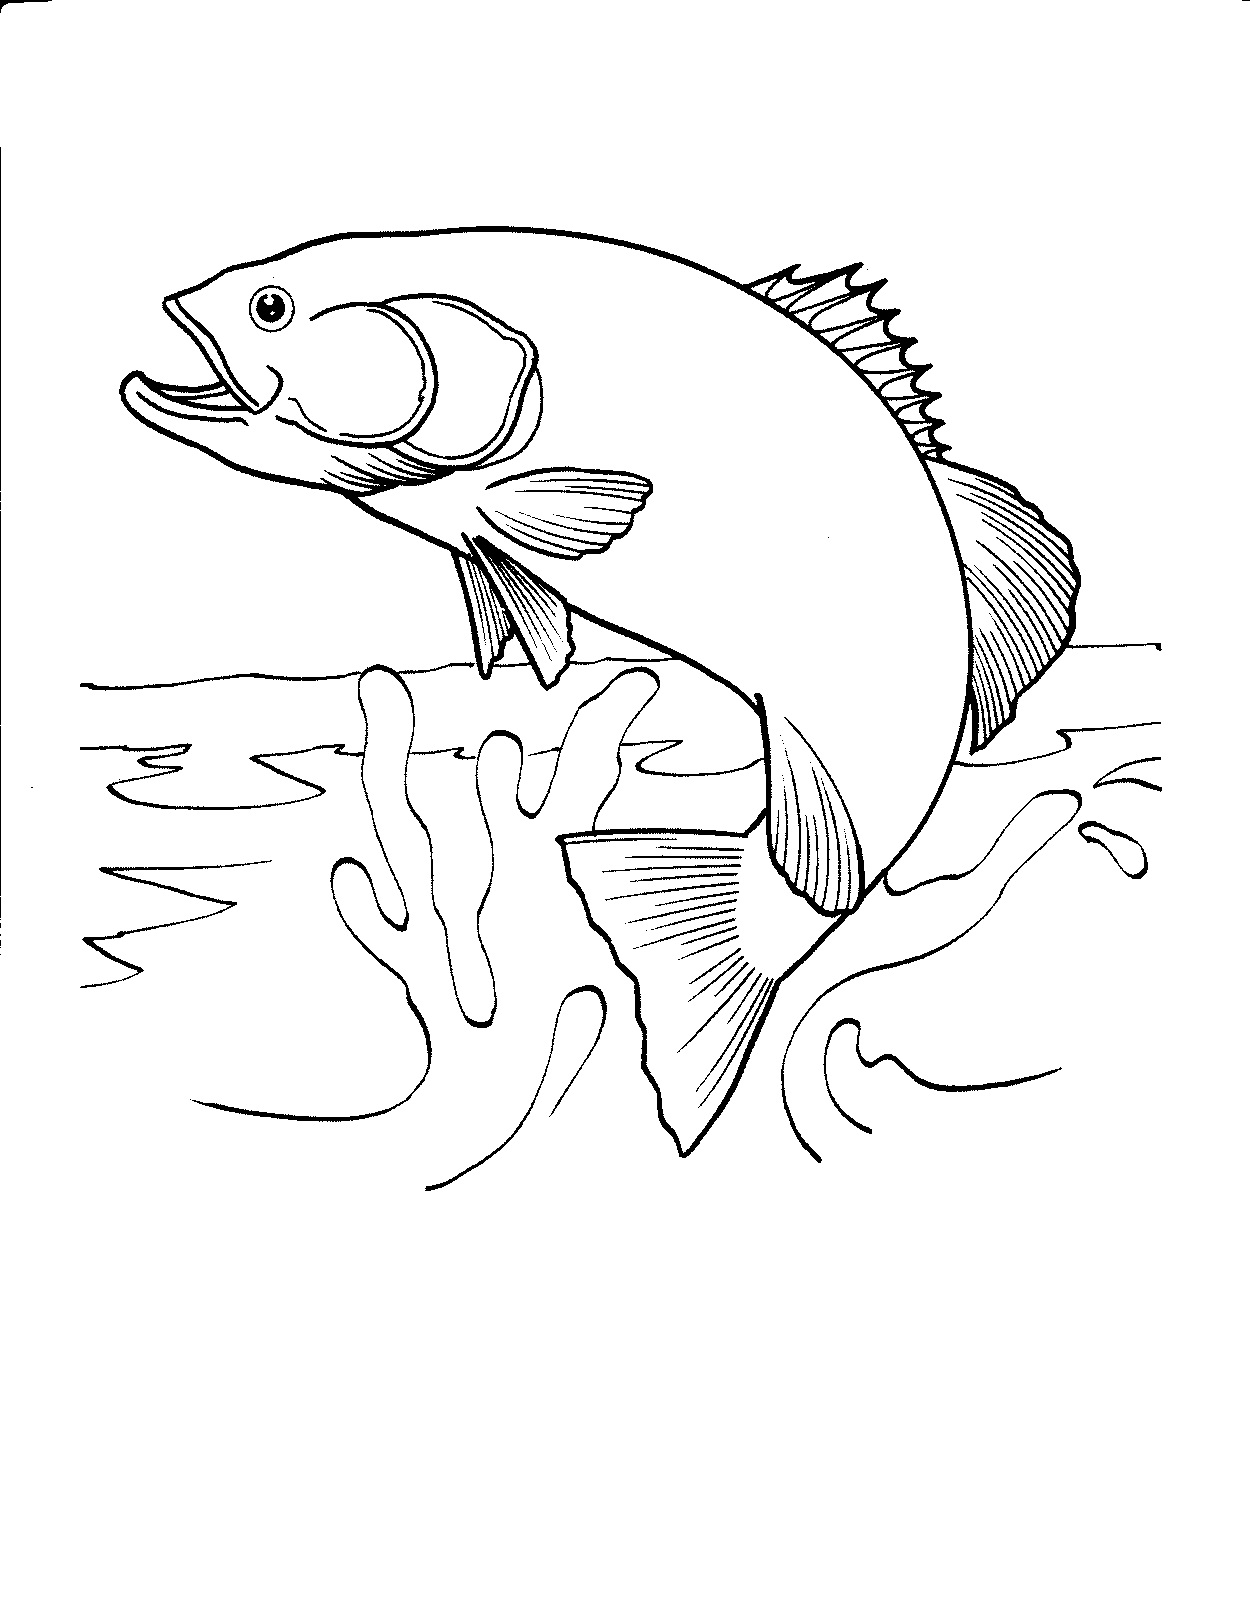 realalistic coloring pages - photo#23